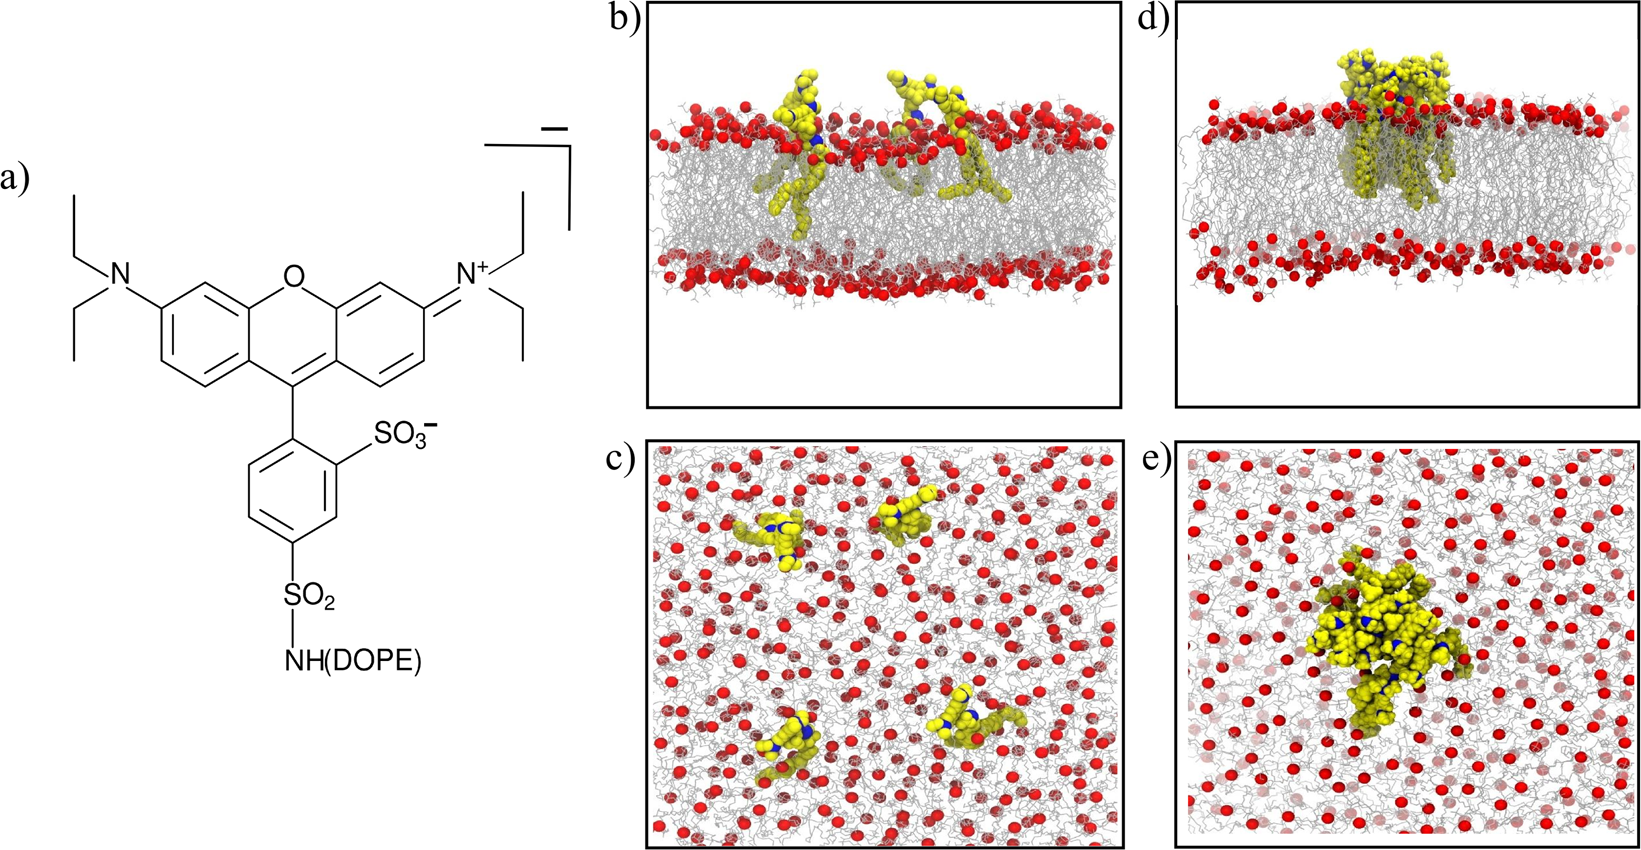 Interplay between lipid lateral diffusion, dye concentration